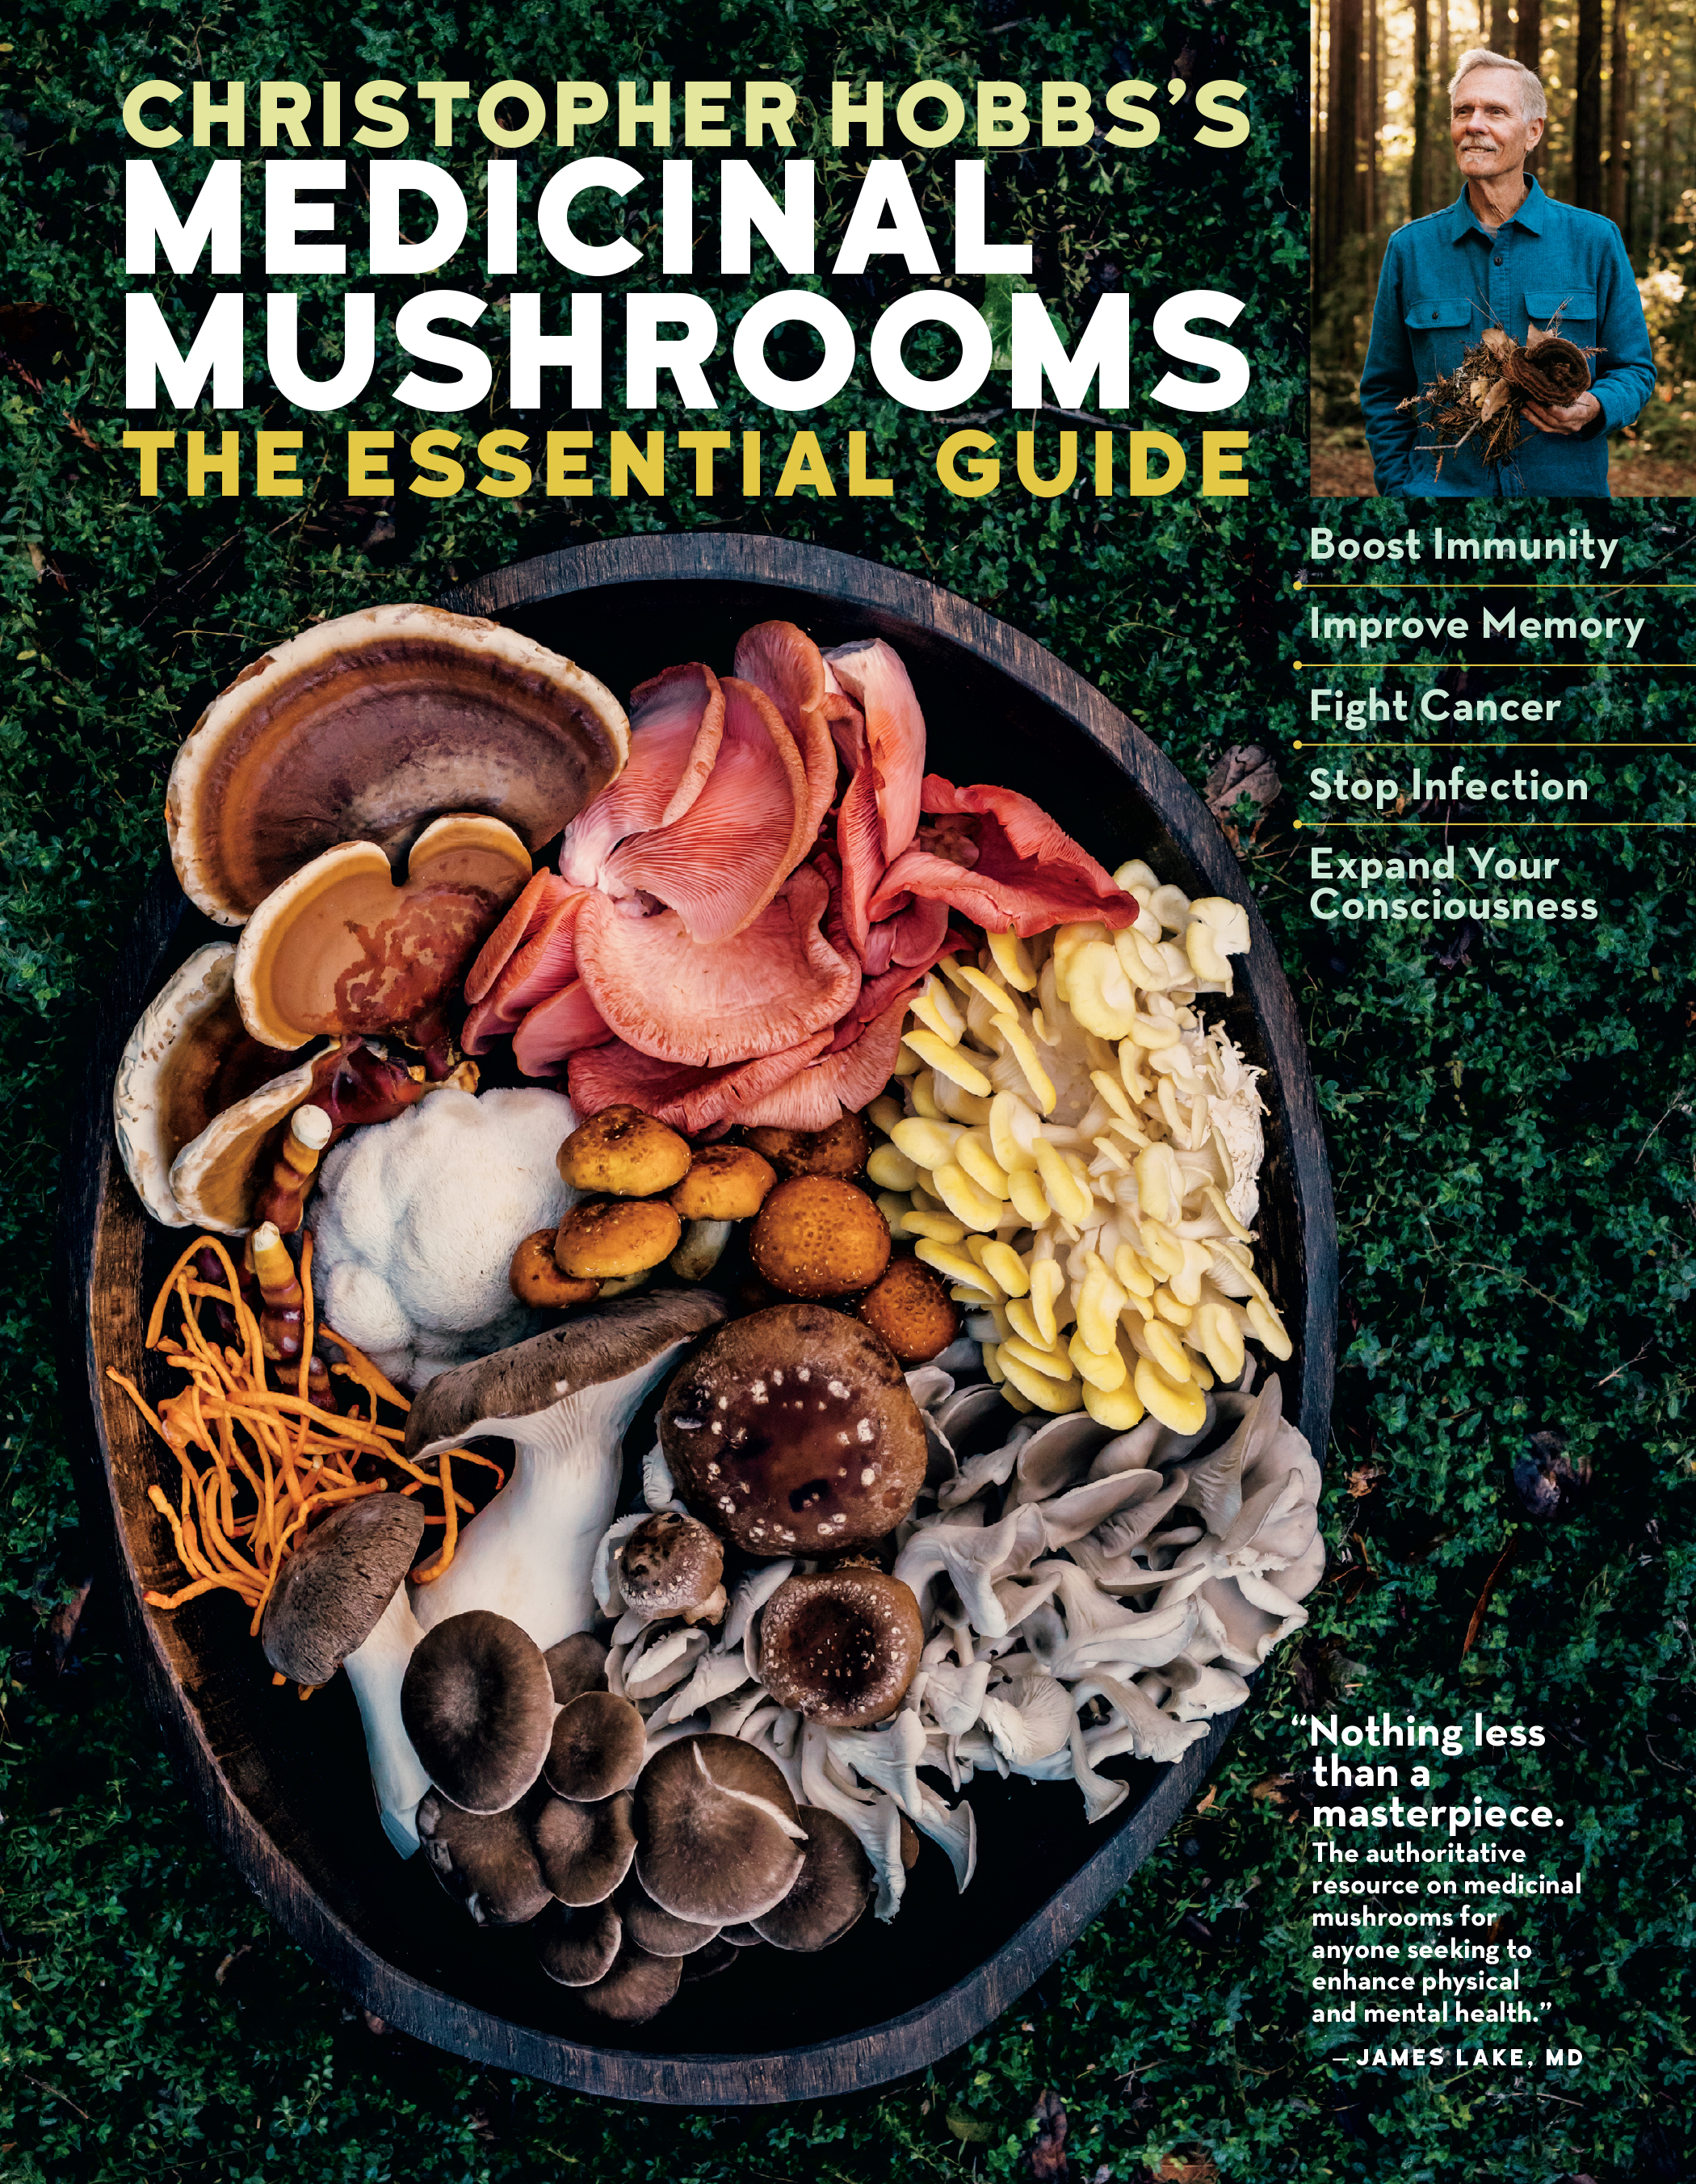 Christopher Hobbs's Medicinal Mushrooms: The Essential Guide Boost Immunity, Improve Memory, Fight Cancer, Stop Infection, and Expand Your Consciousness - Christopher Hobbs